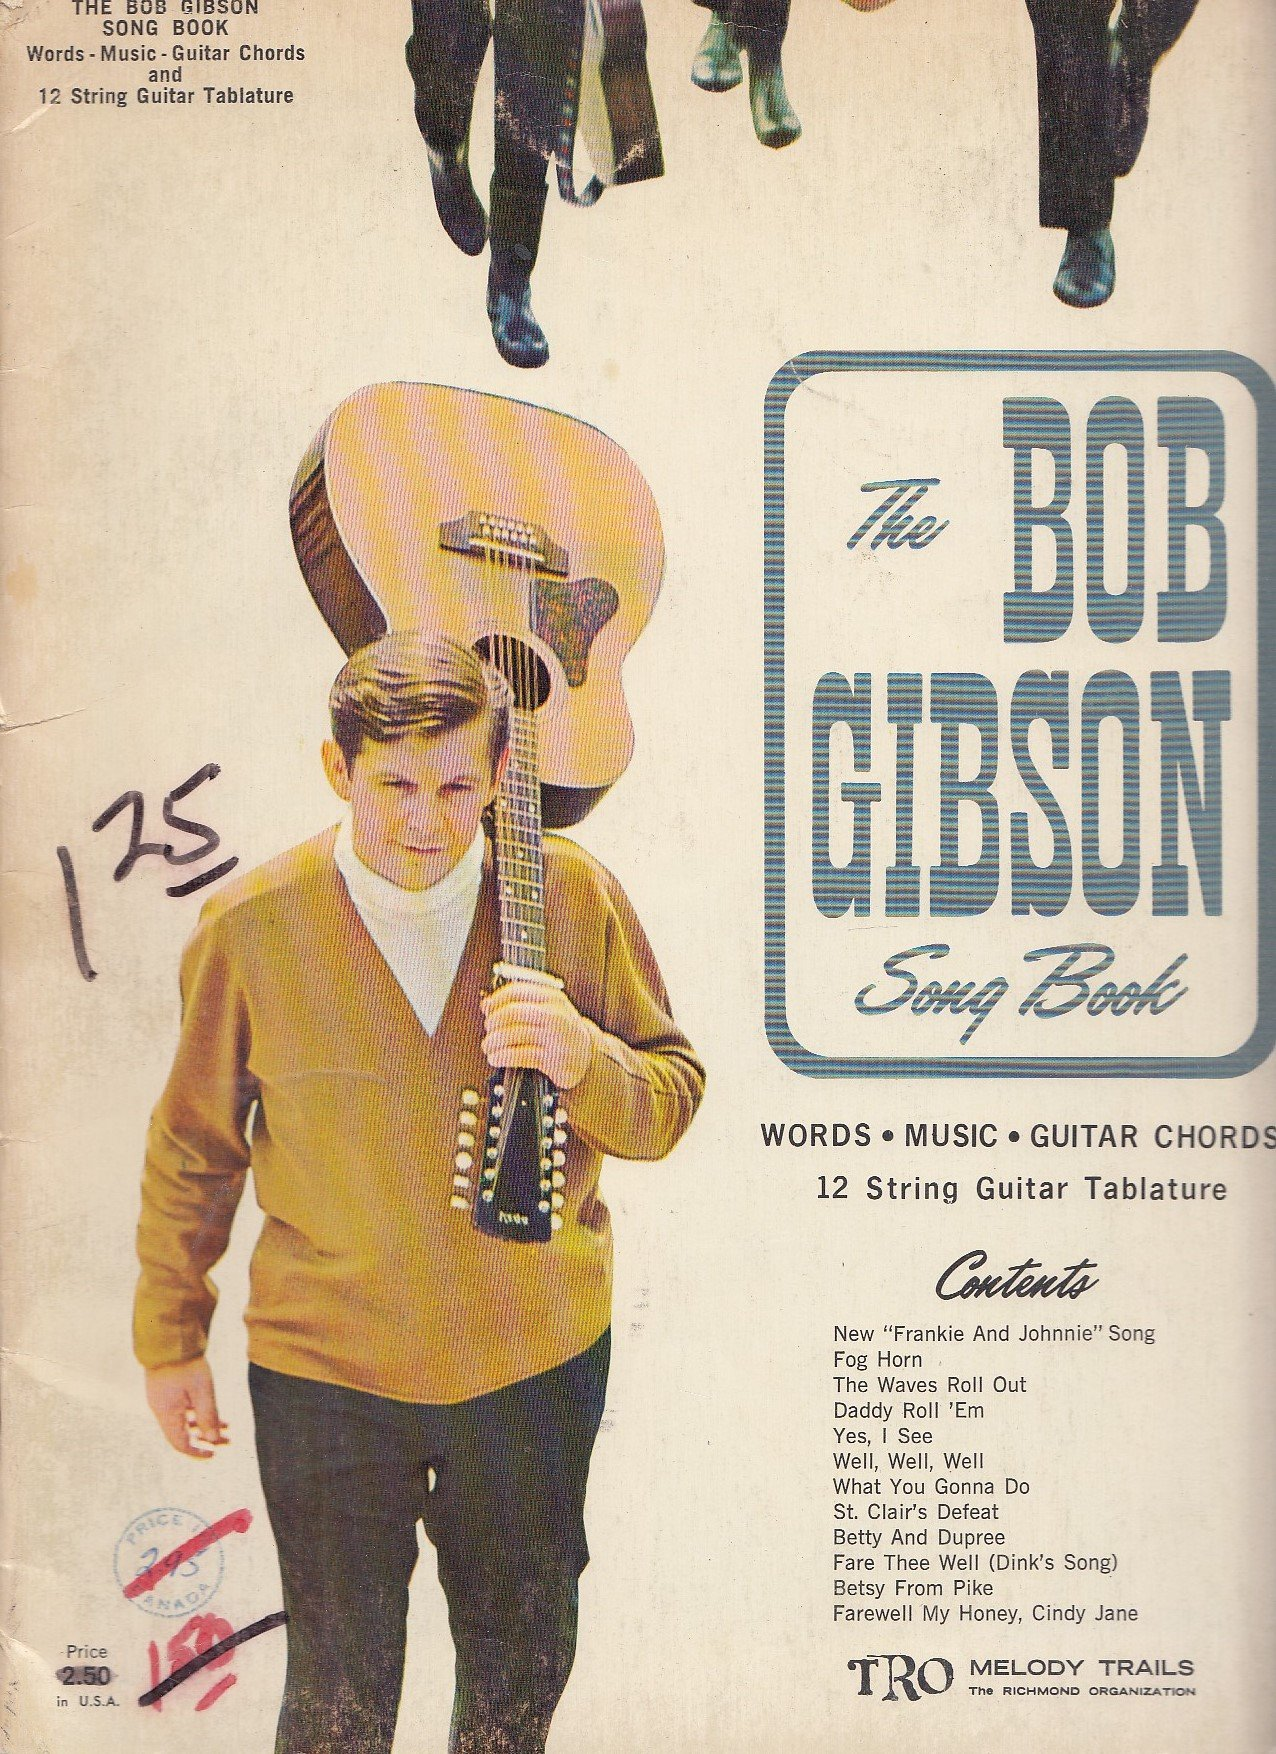 The Bob Gibson Song Book Words Music Guitar Chords 12 String Guitar